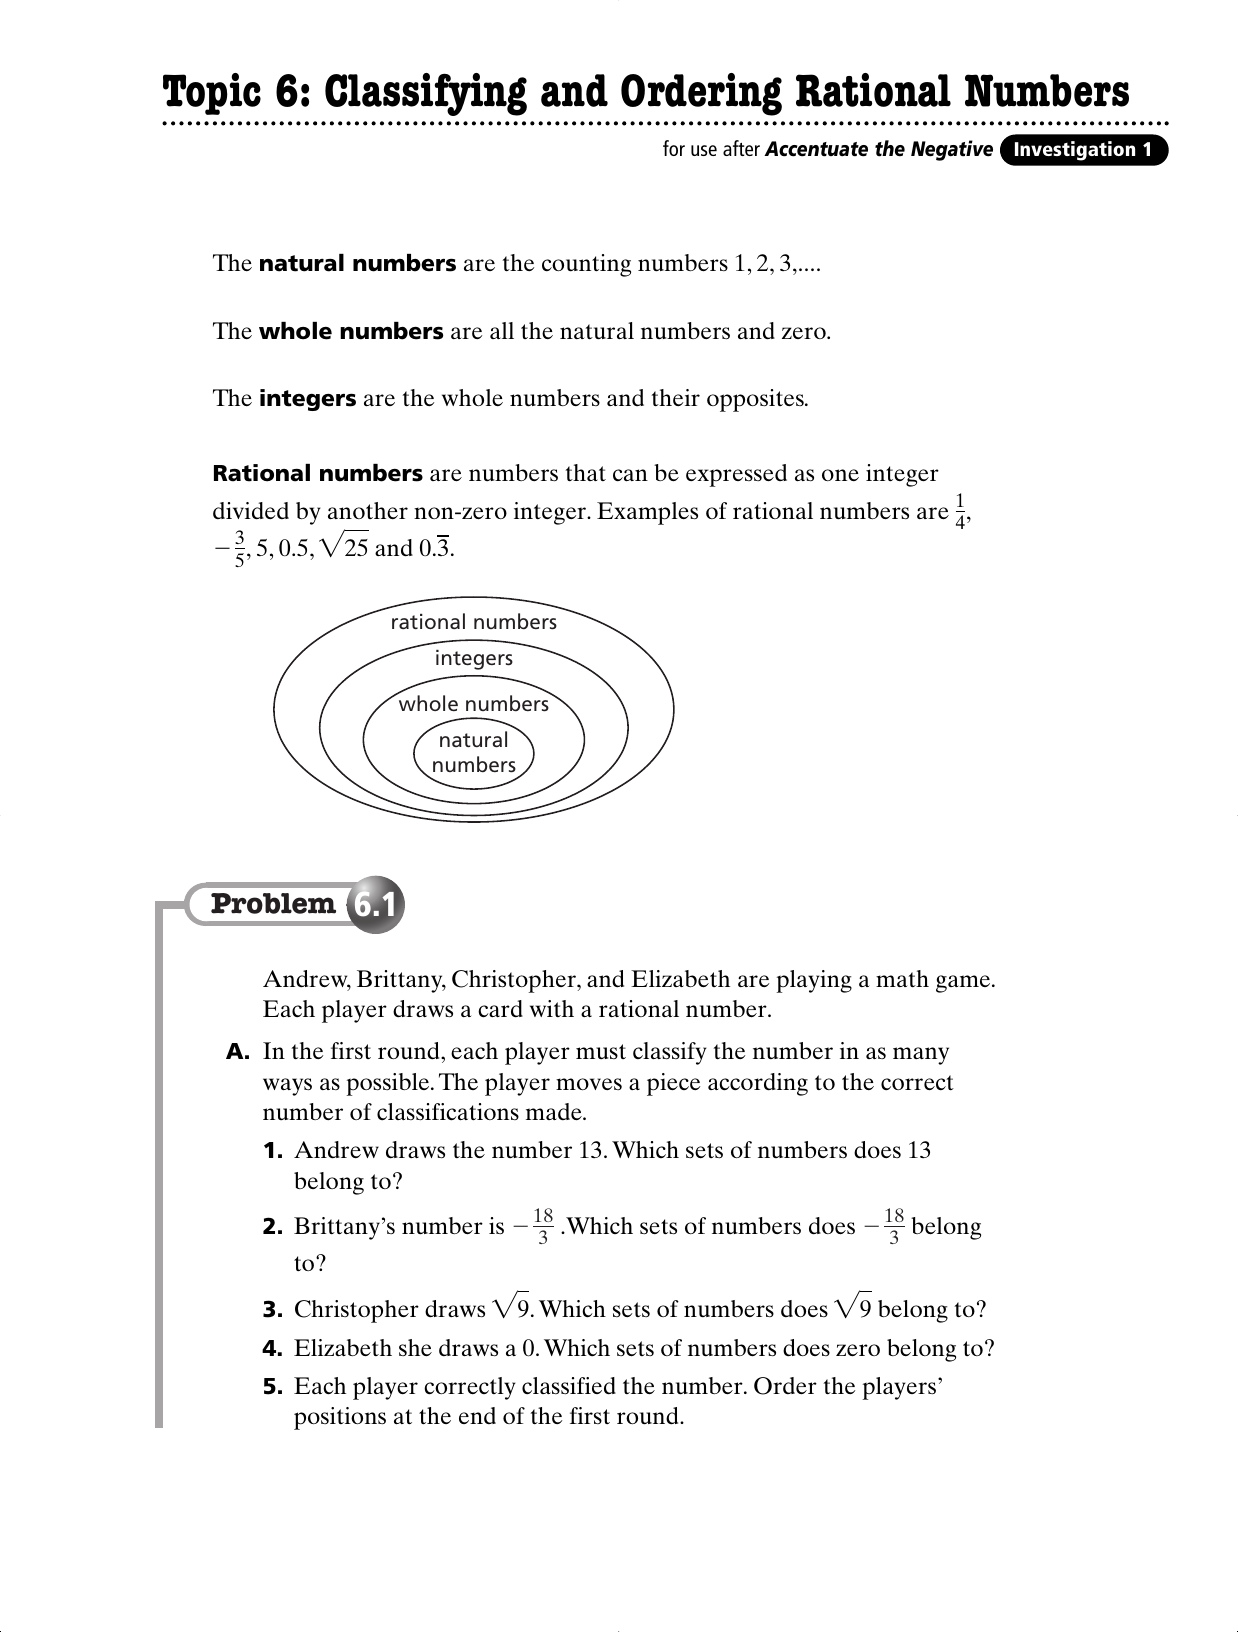 Worksheets Compare And Order Rational Numbers Worksheet topic 6 classifying and ordering rational numbers